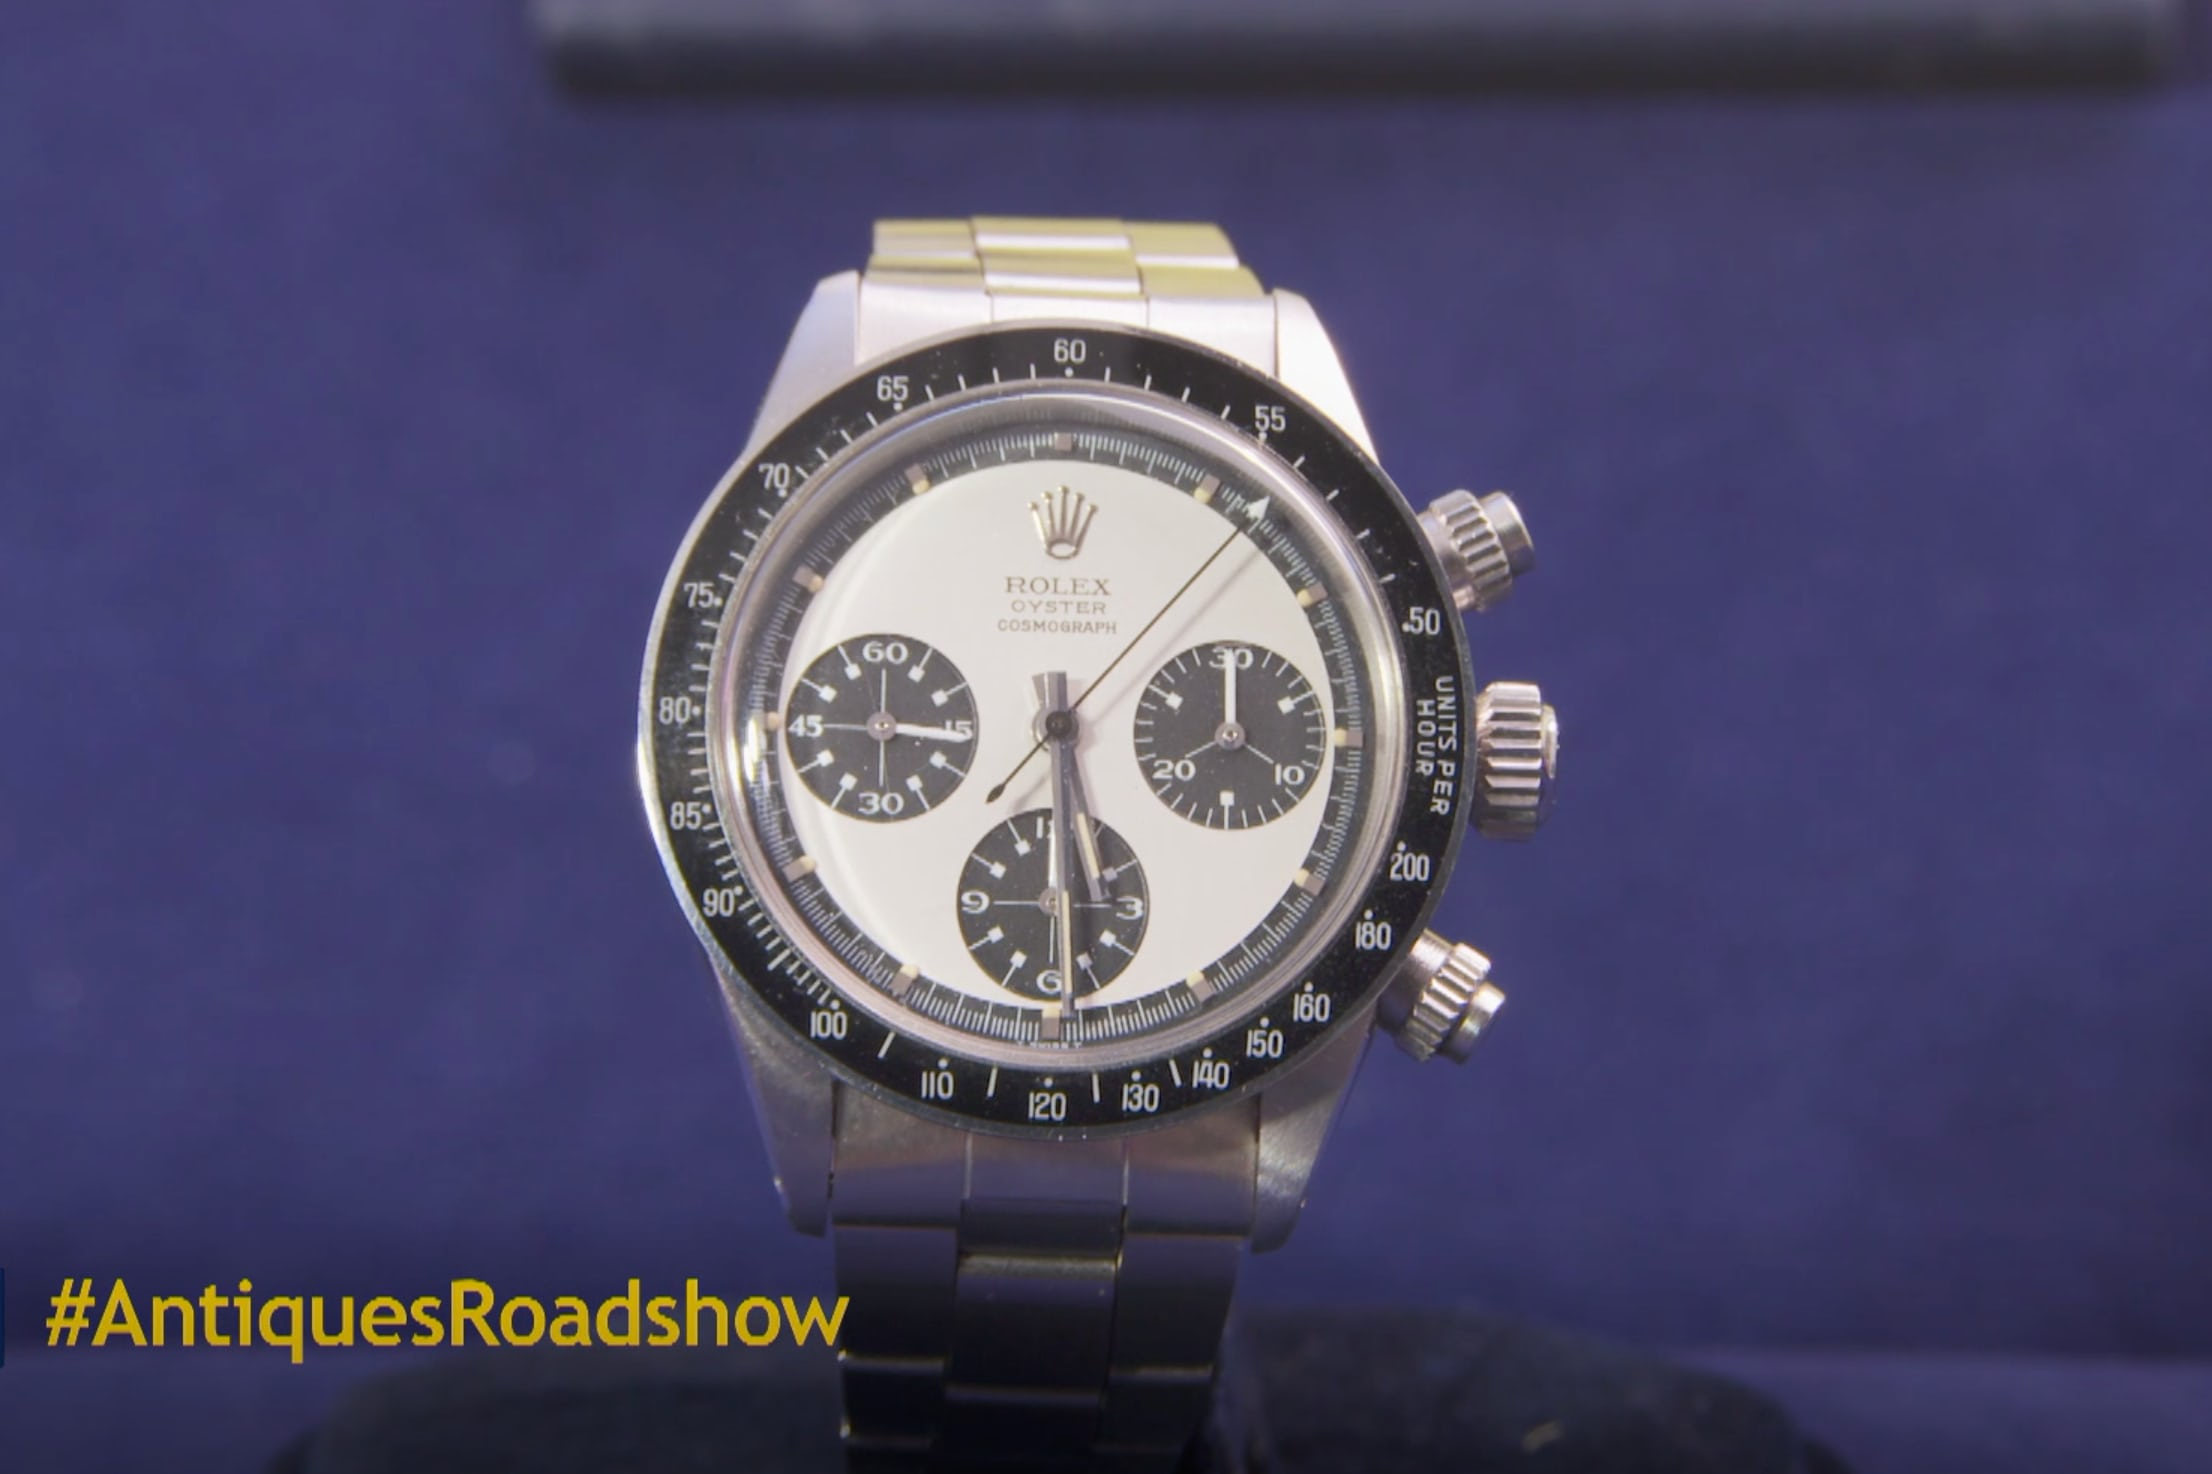 Forget the Rolex Daytona on Antiques Roadshow, here are three watches to stash in your safe now